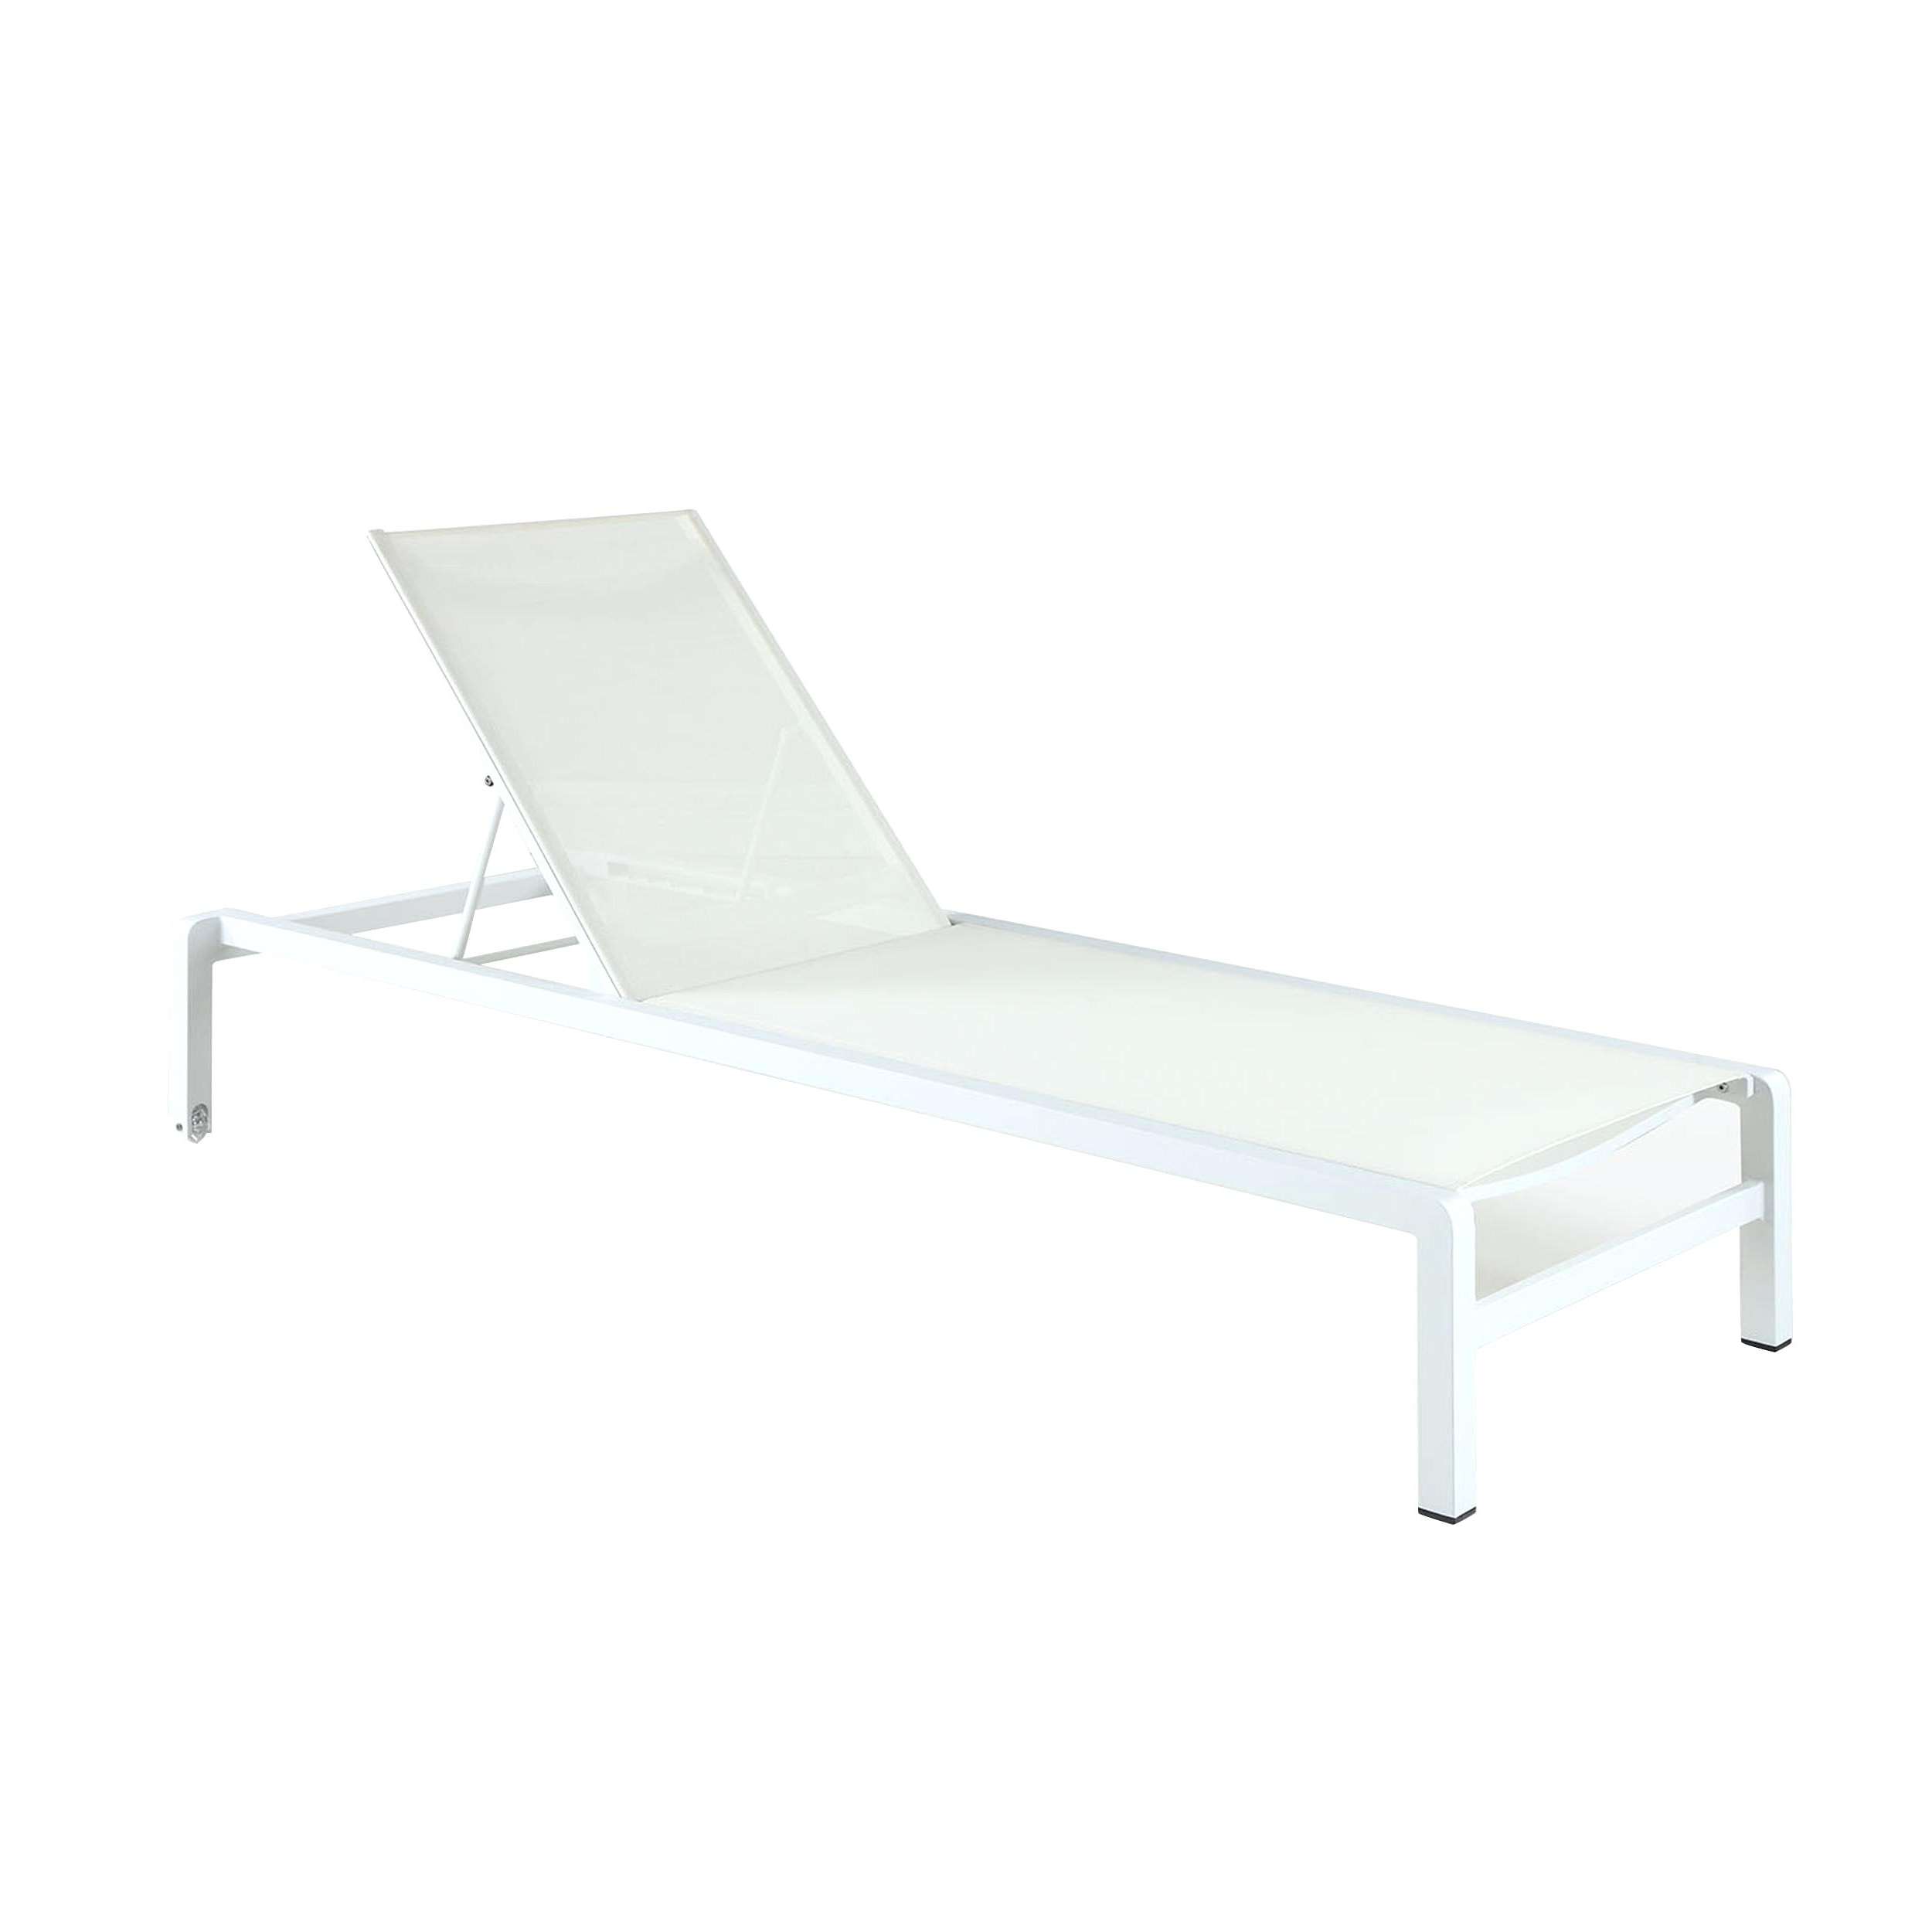 Trendy Shore Aluminum Outdoor Chaise Lounges Pertaining To Delectable Aluminum Chaise Lounge Chair Furniture Outdoor (View 21 of 25)